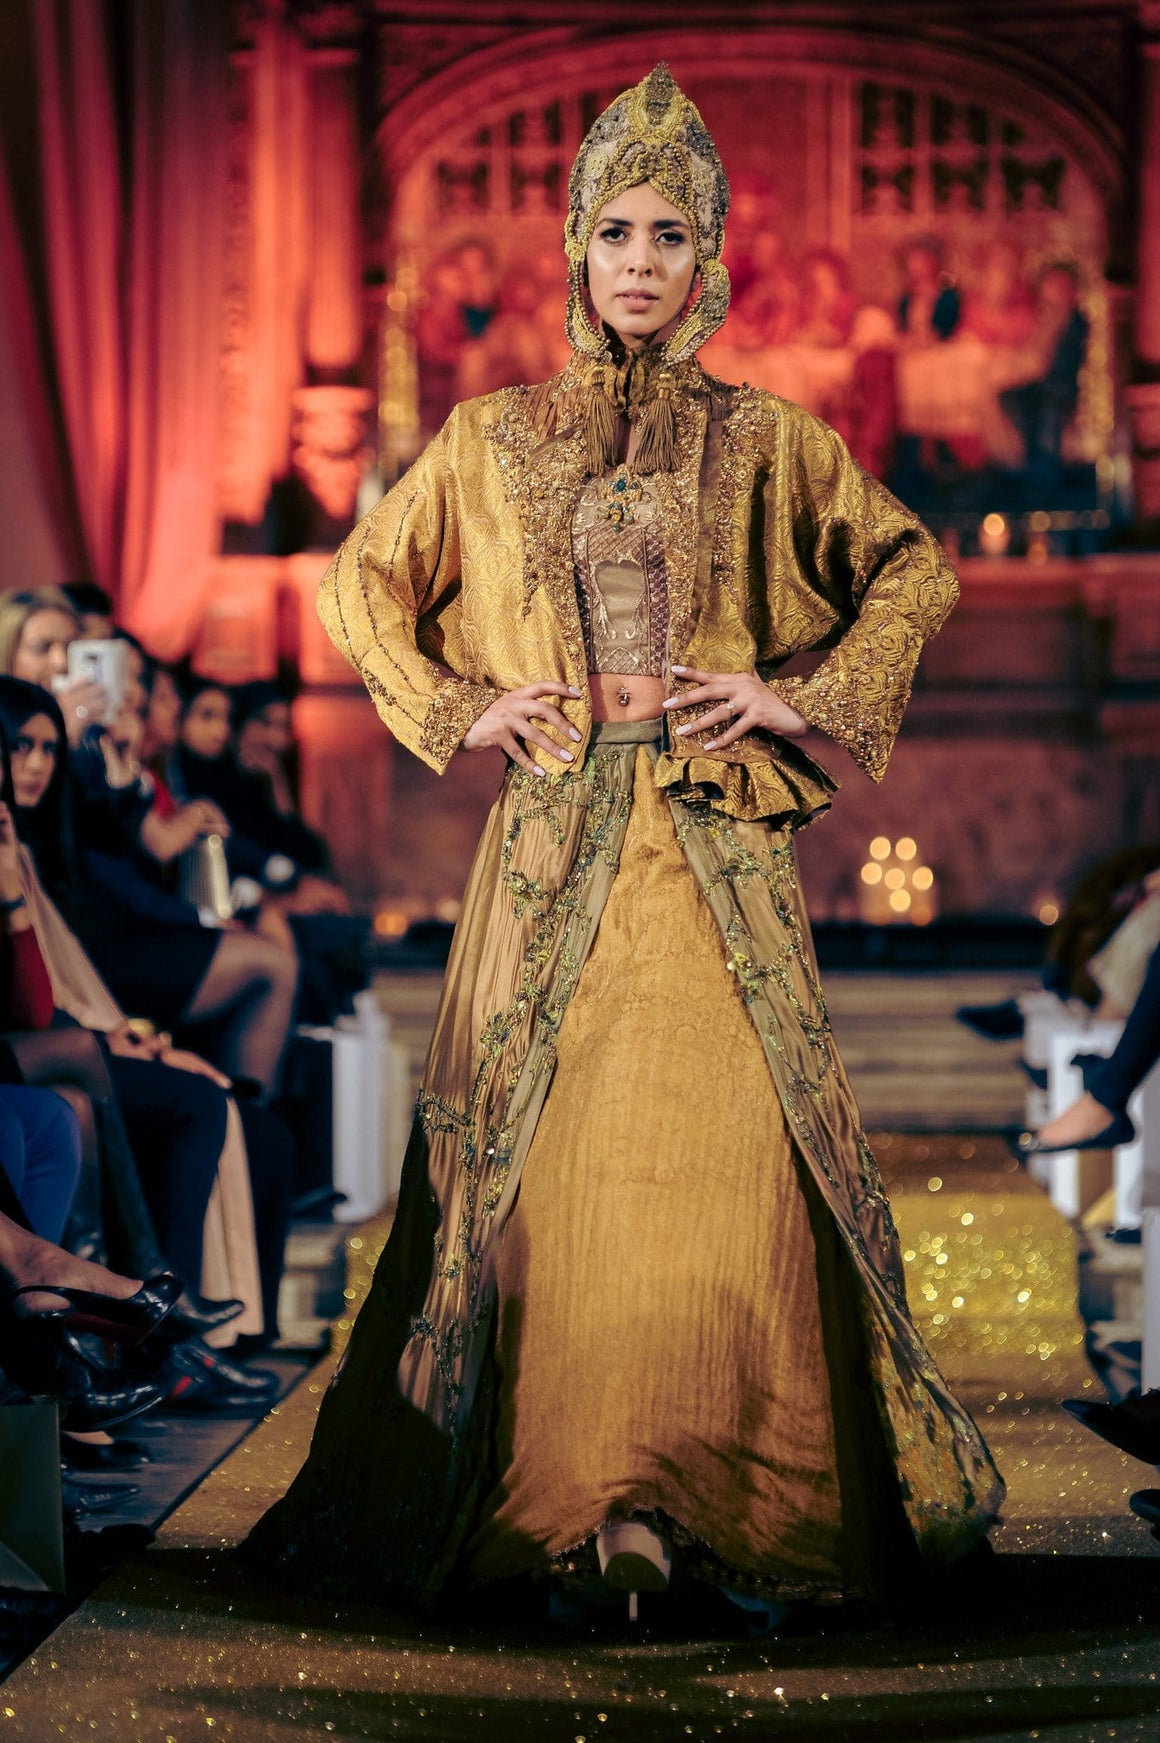 Nilofer Shahid - Harvest Gold Khimkhab Jacket With Heavily Embellished Layered Skirt